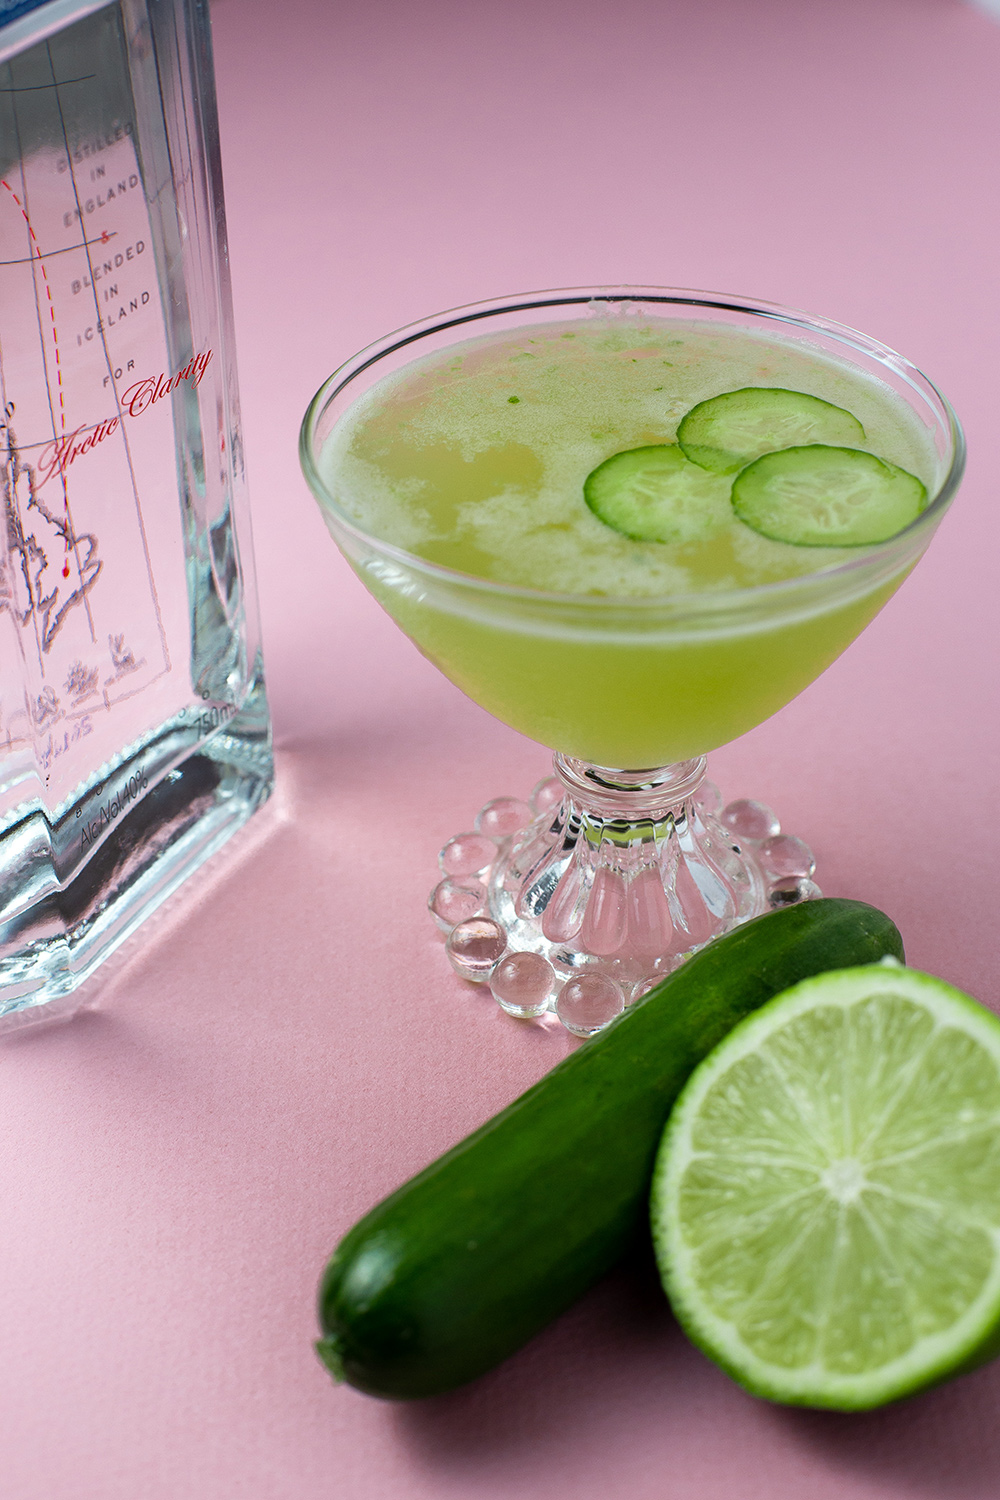 Copy of Cucumber Gimlet